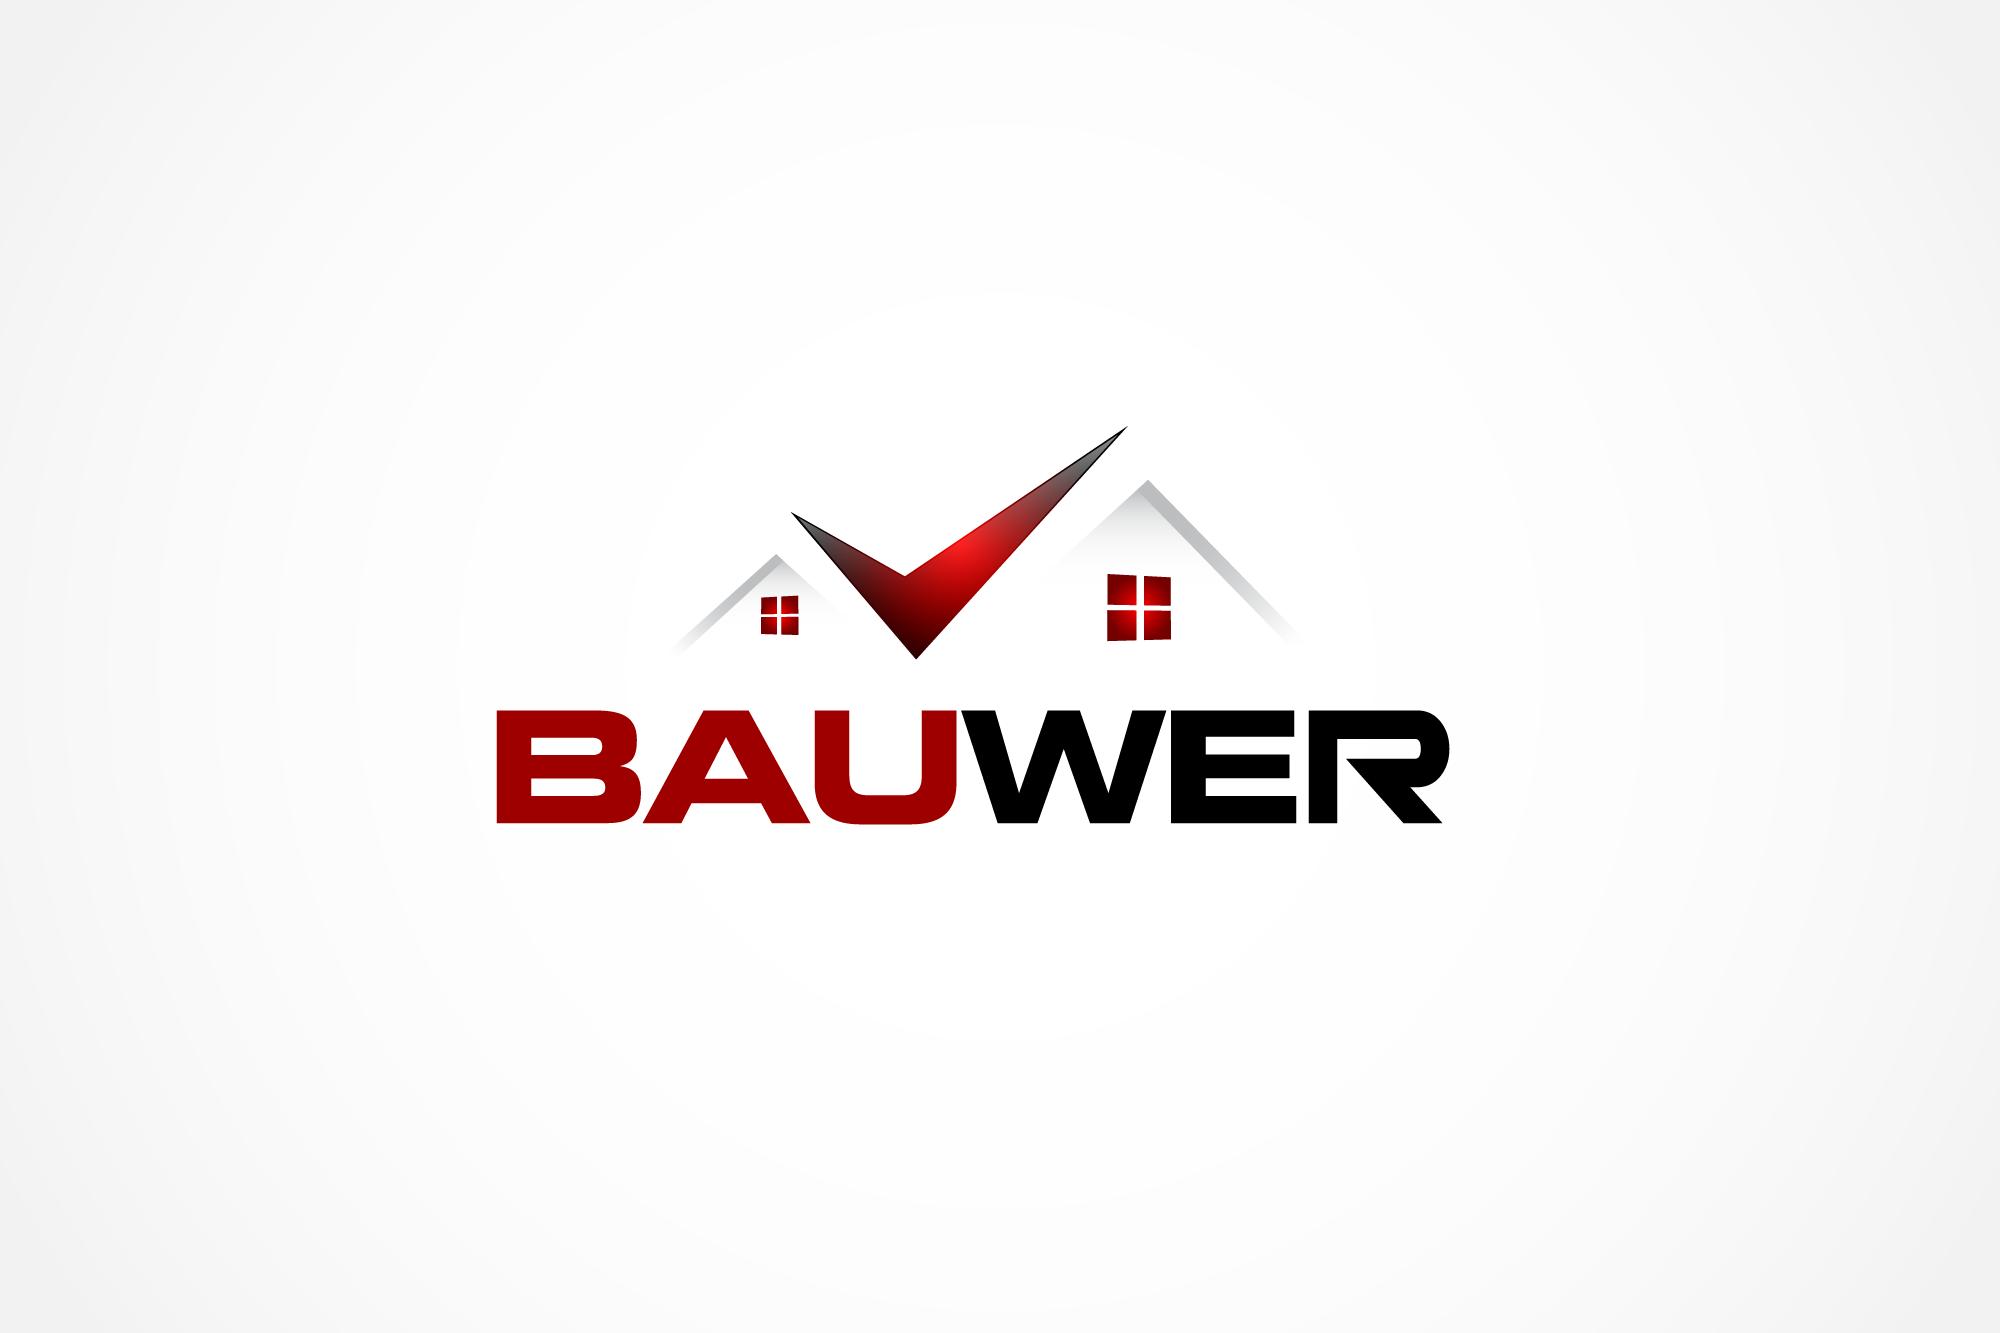 New logo wanted for BAUWER